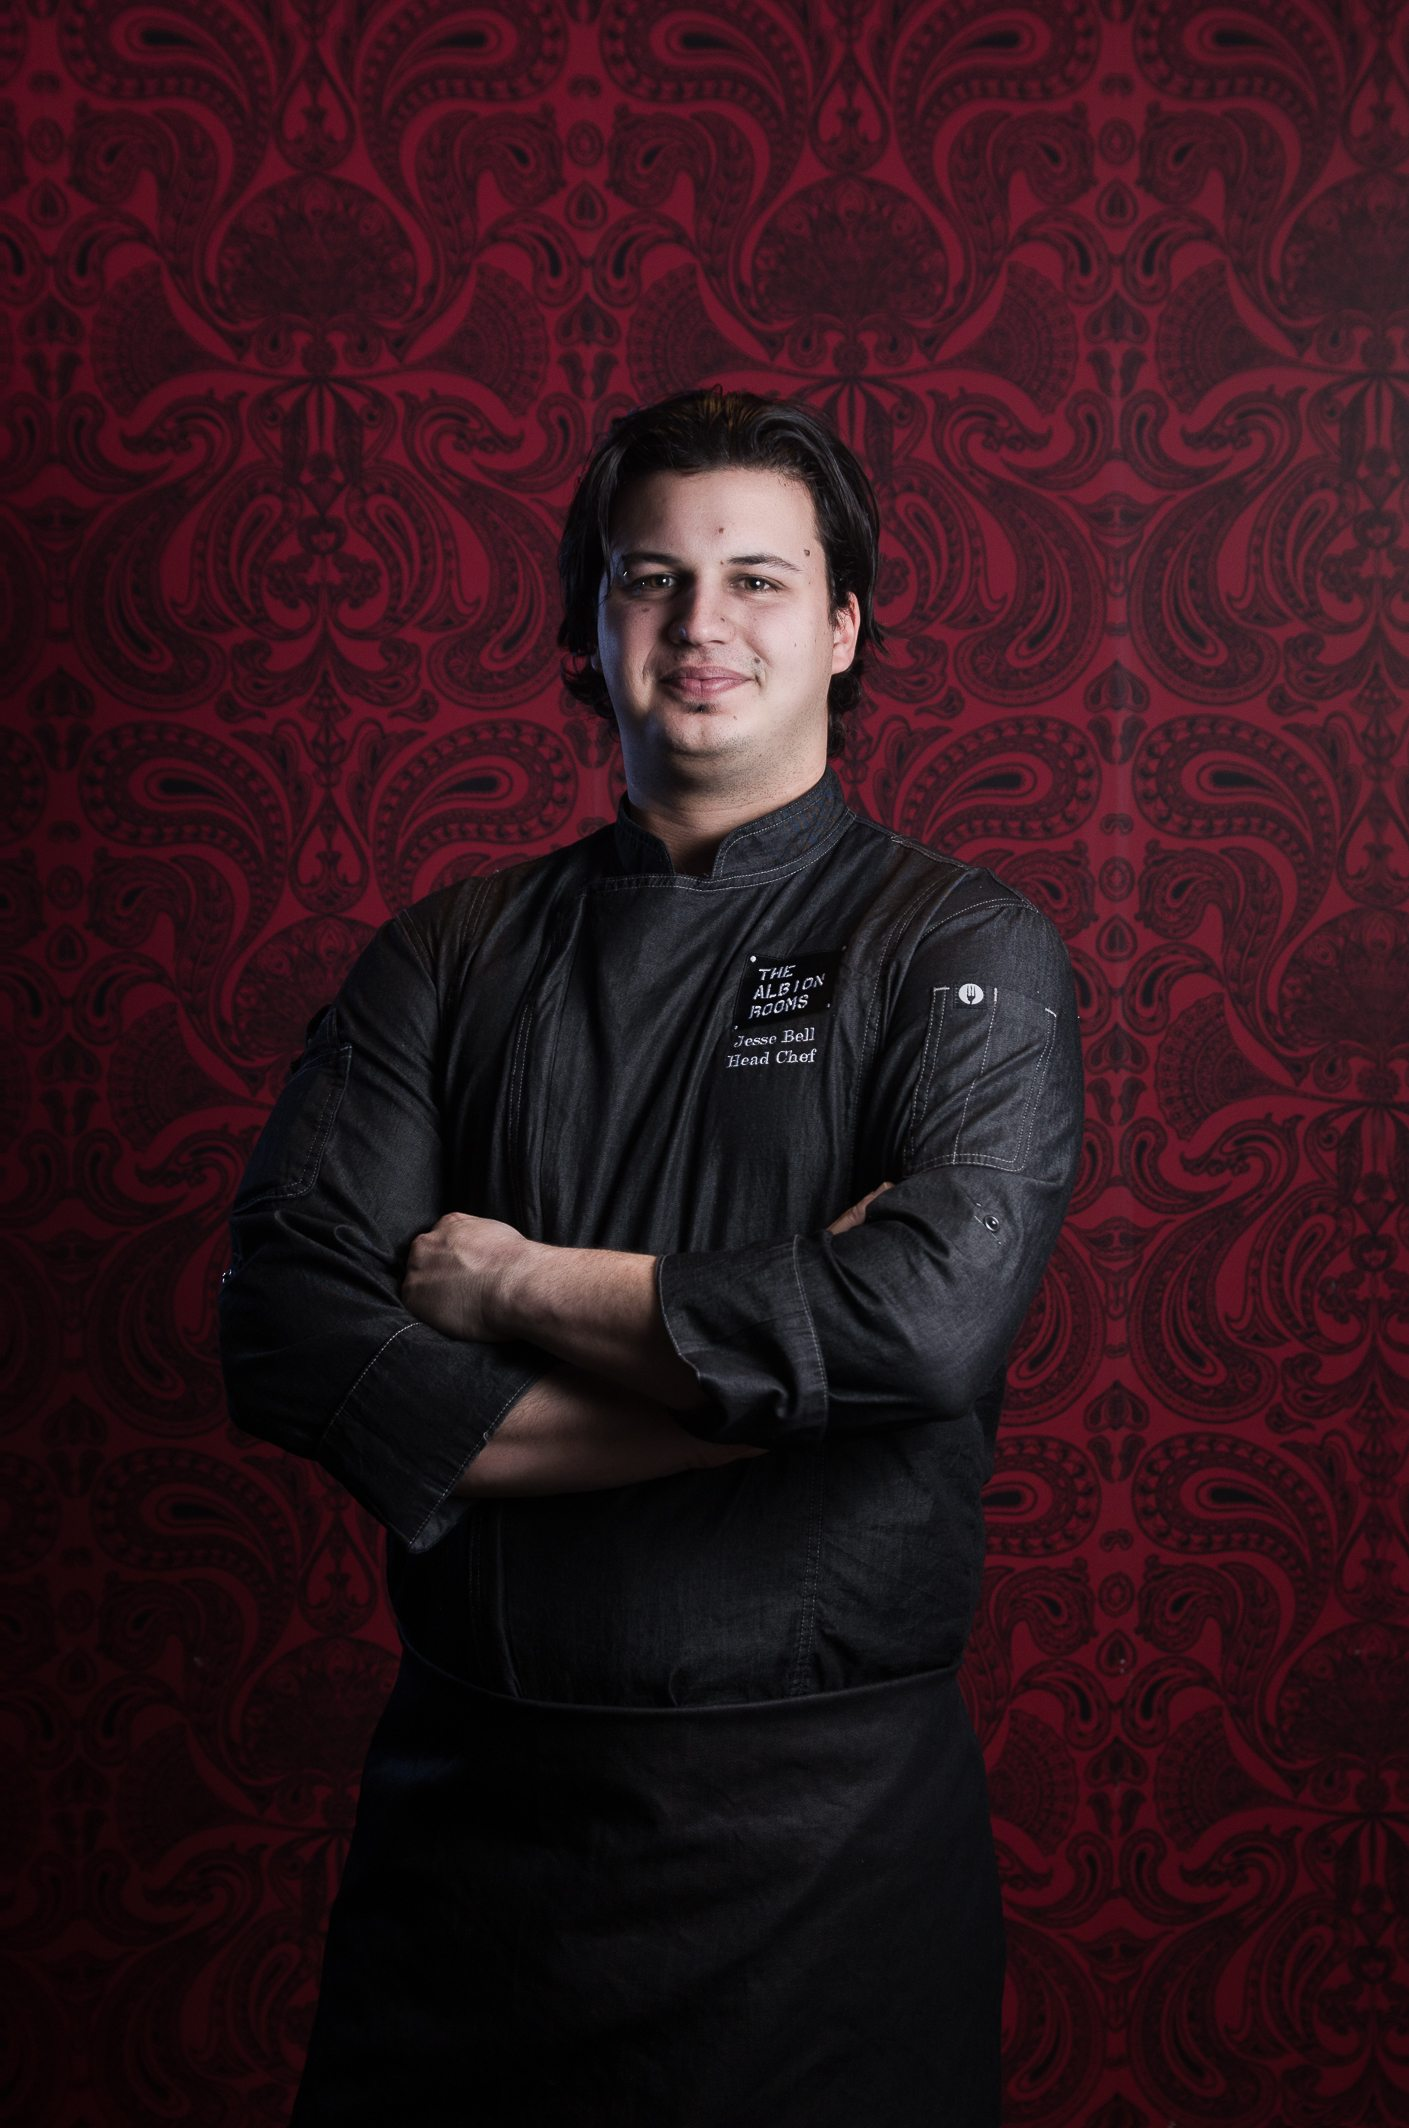 Executive Chef Jesse Bell stands in front of the rich wallpaper in The Heritage Room Gastropub. Photo: Shane Francescut